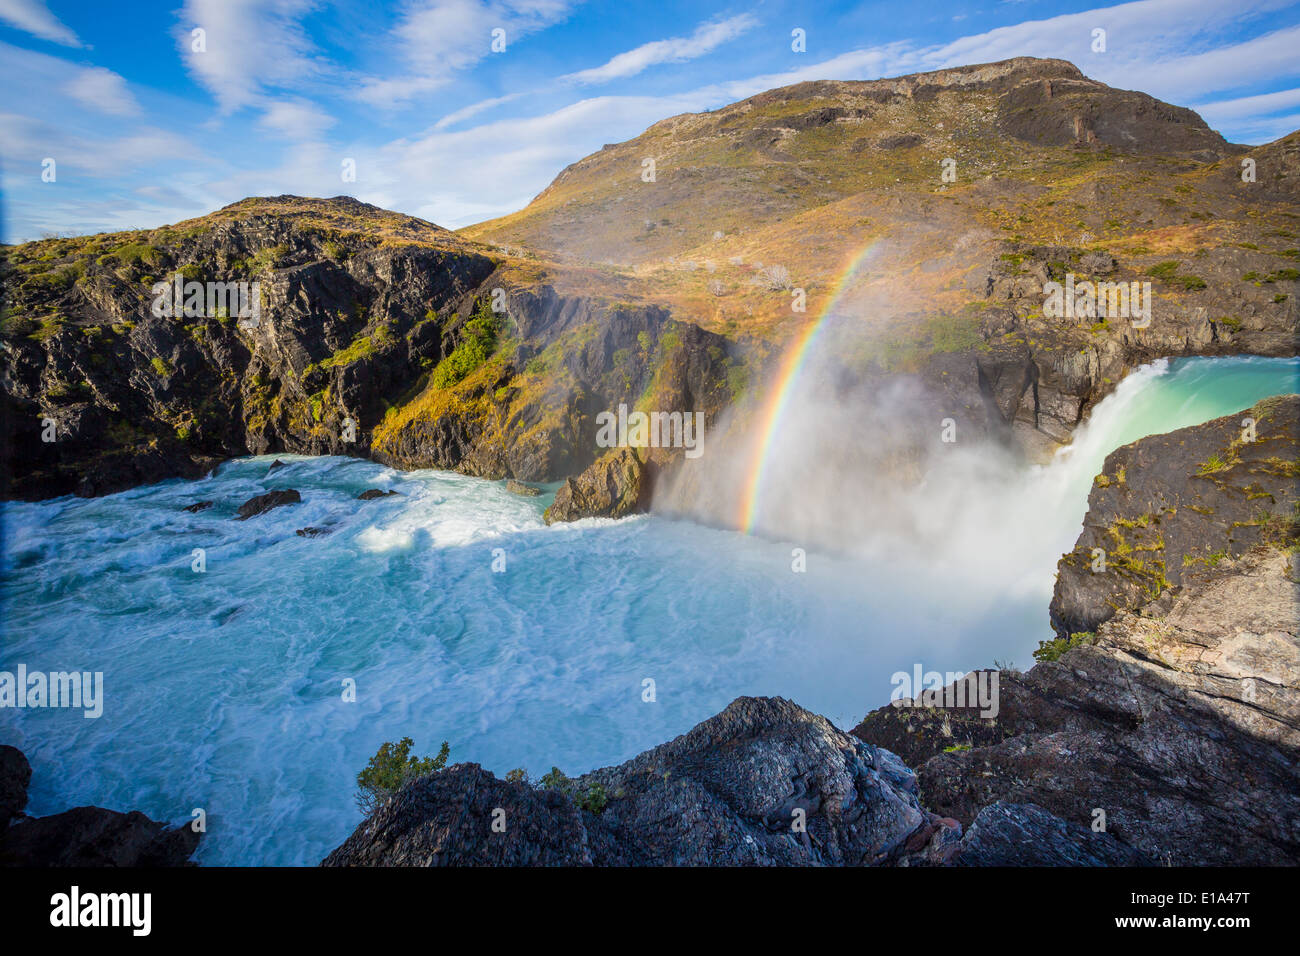 The Salto Grande is a waterfall on the Paine River within the Torres del Paine National Park in Chile - Stock Image